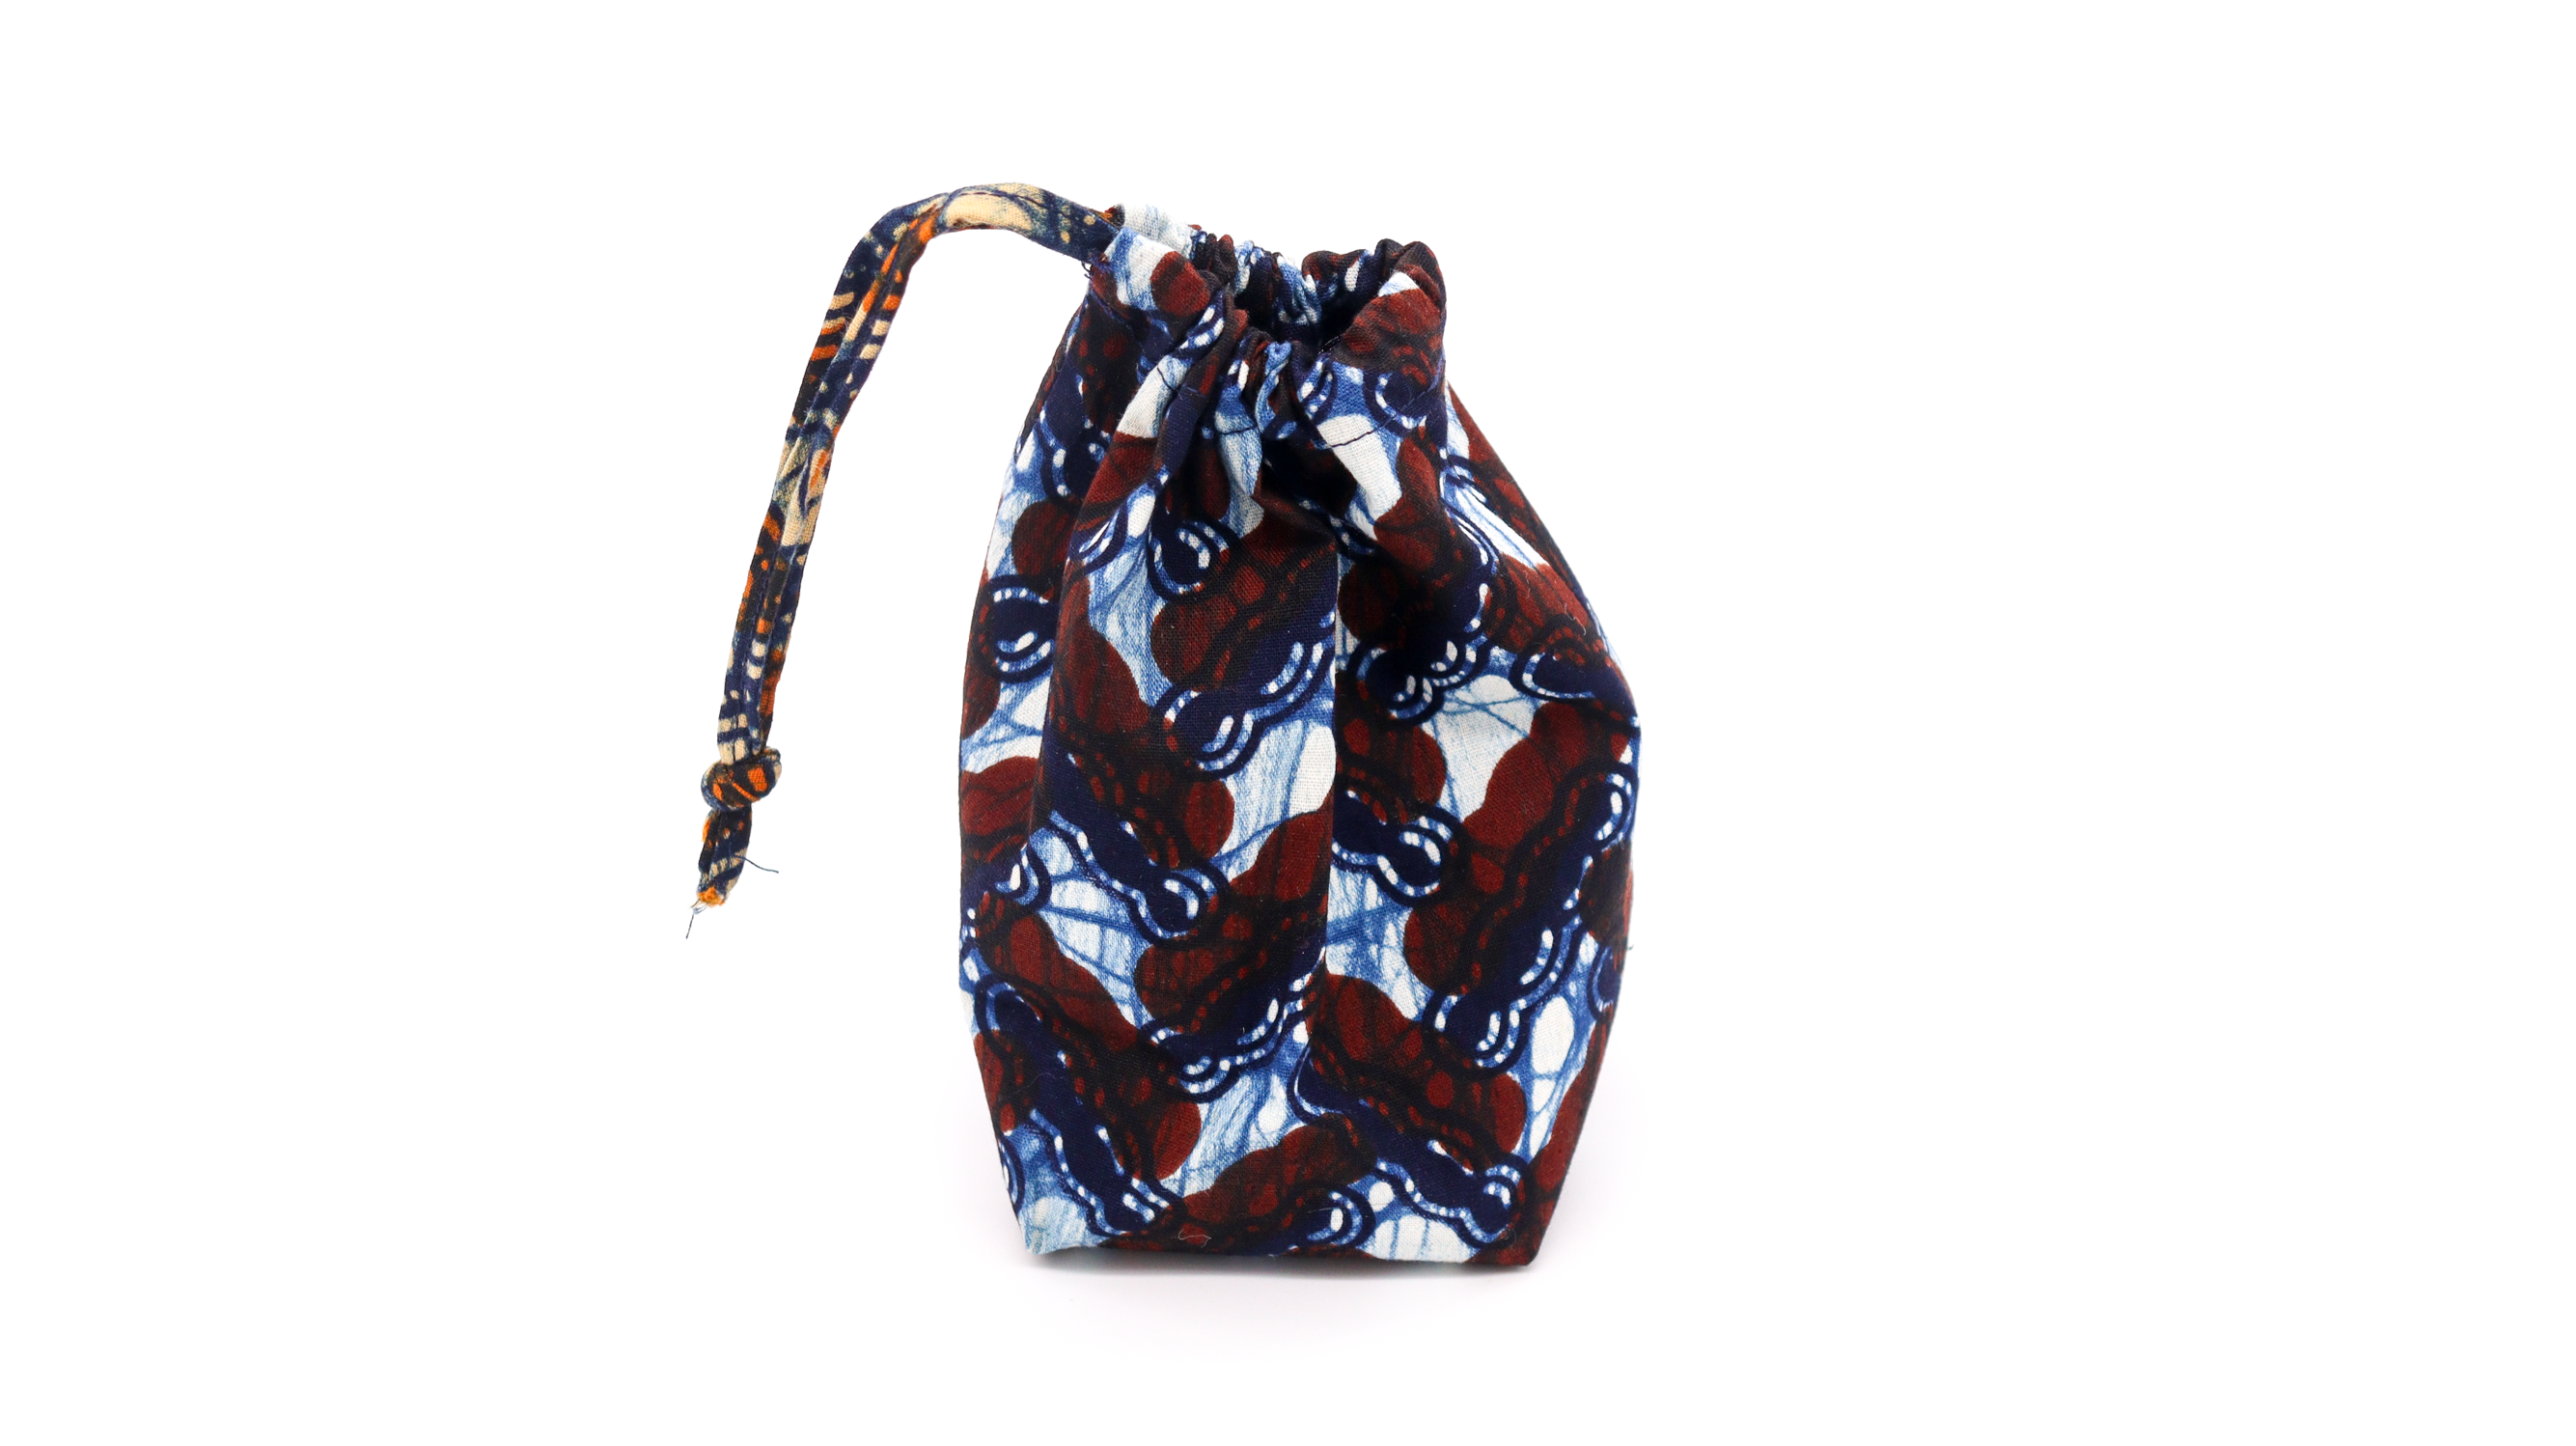 Copper Printed Multi-Use Pouch - Brown & Blue Design